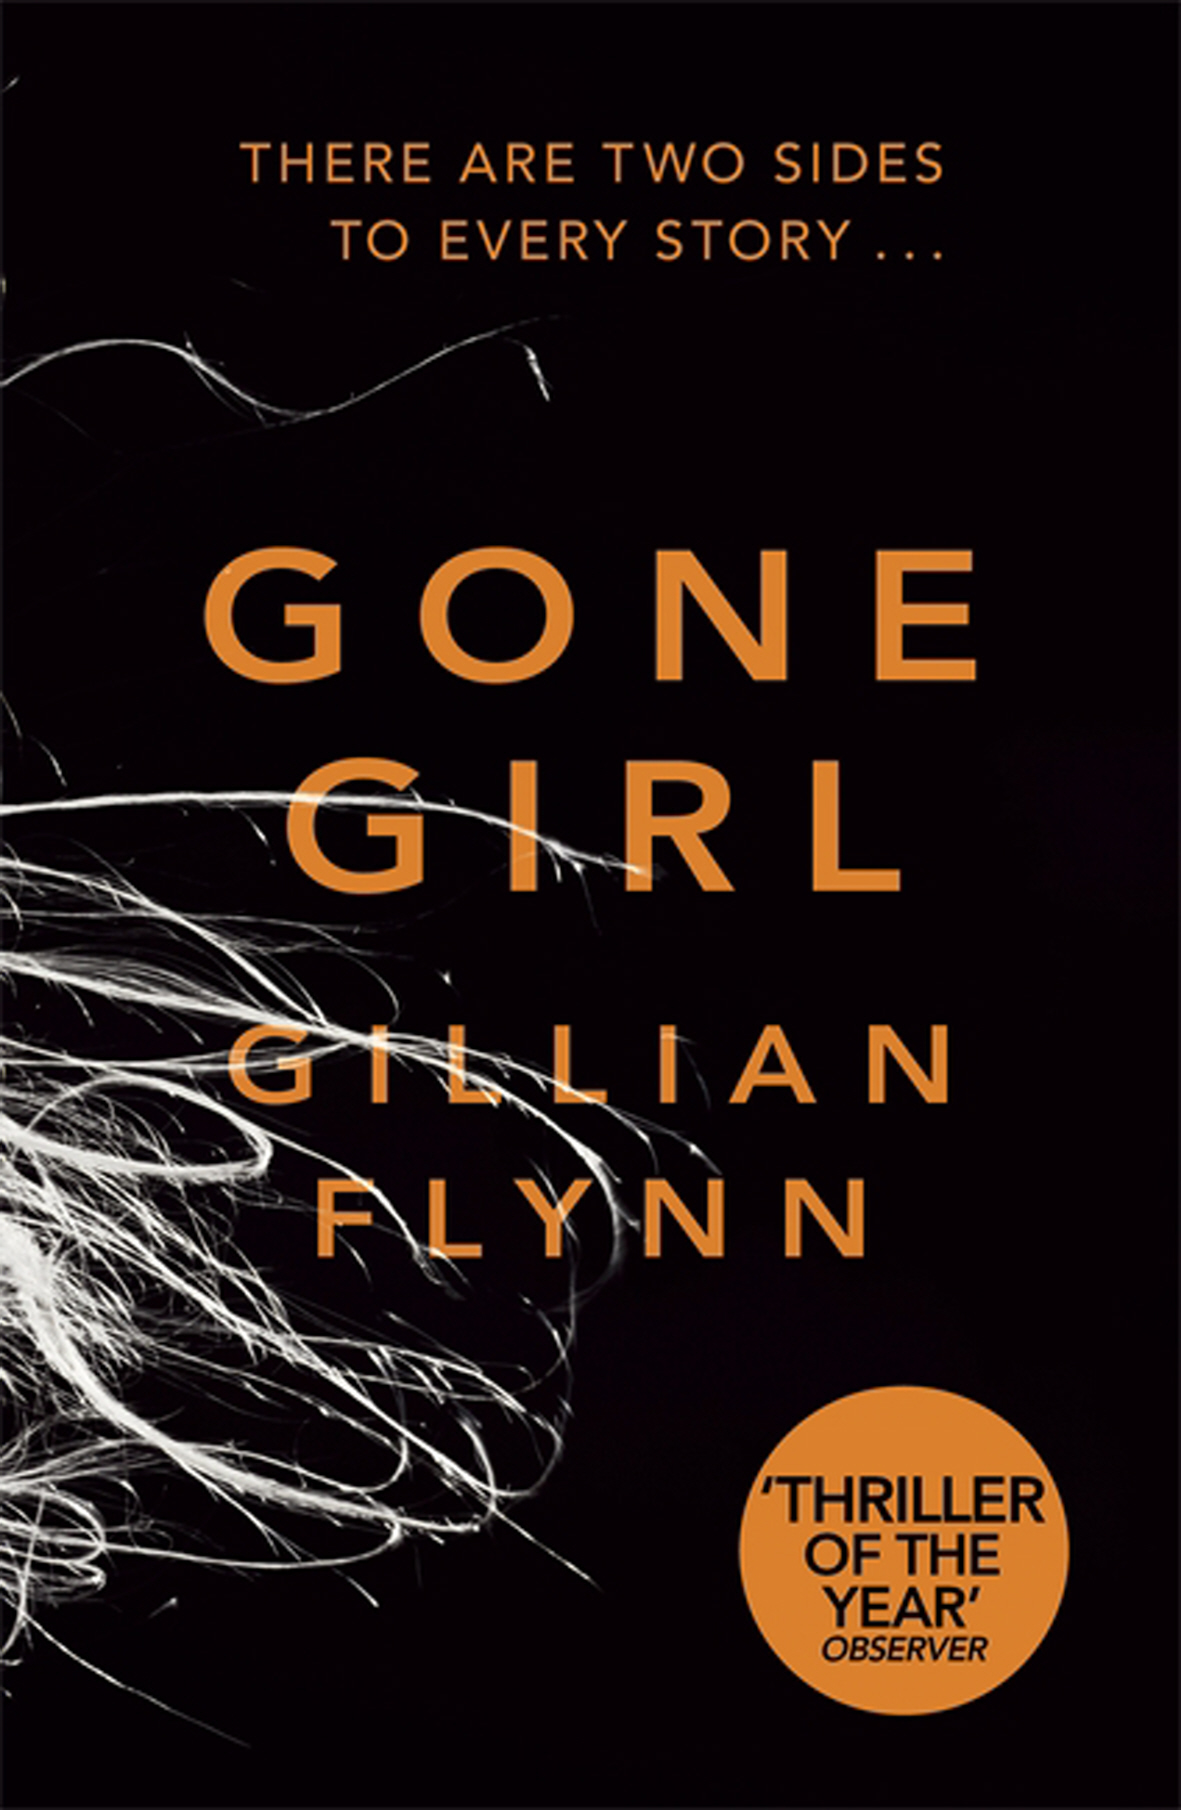 Movie & Book Review: Gone Girl by Gillian Flynn